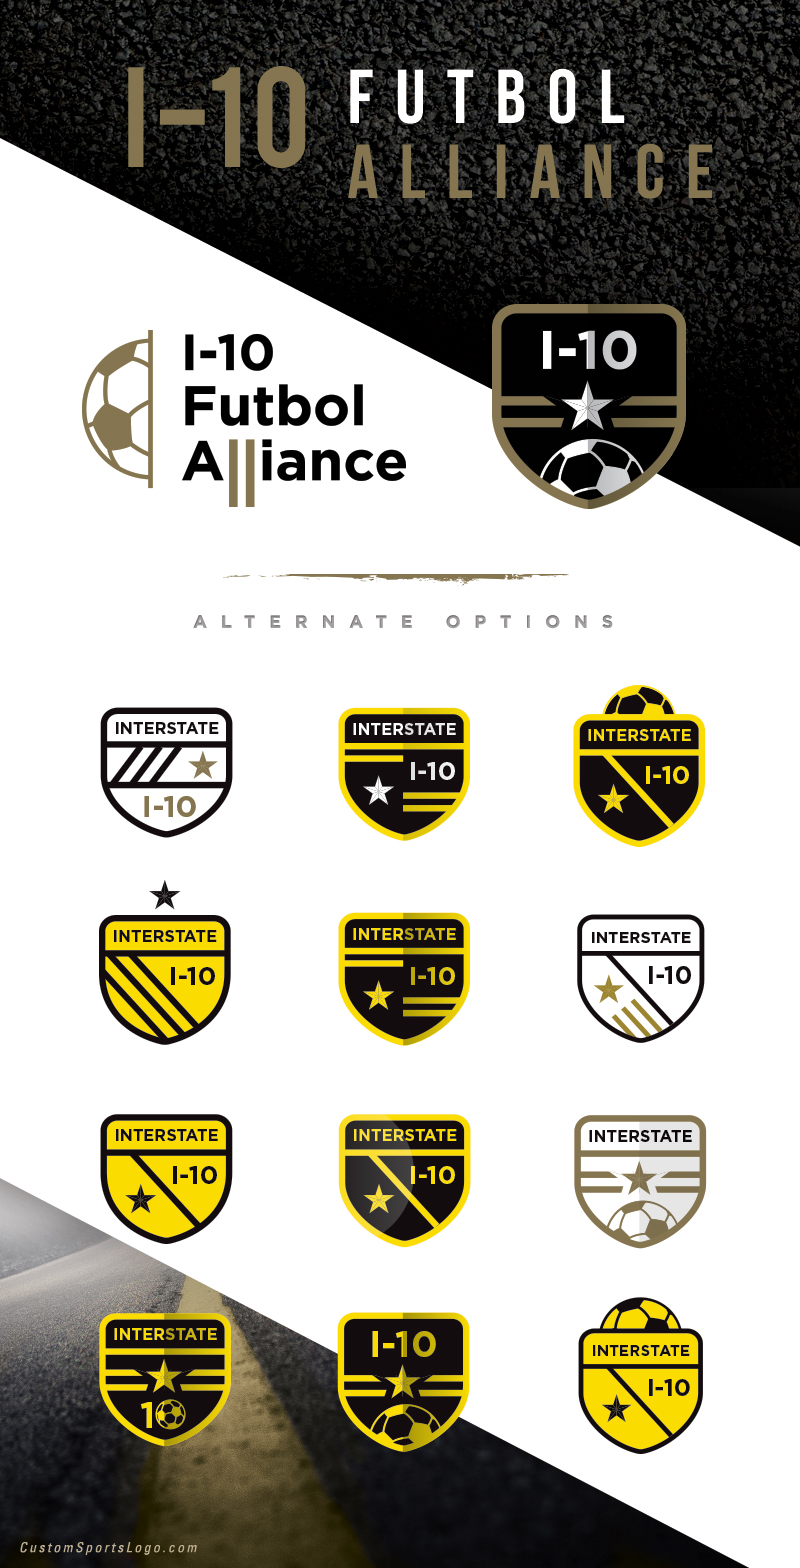 Multiple-Option-Examples-1-10-Futbol-Alliance-final.jpg